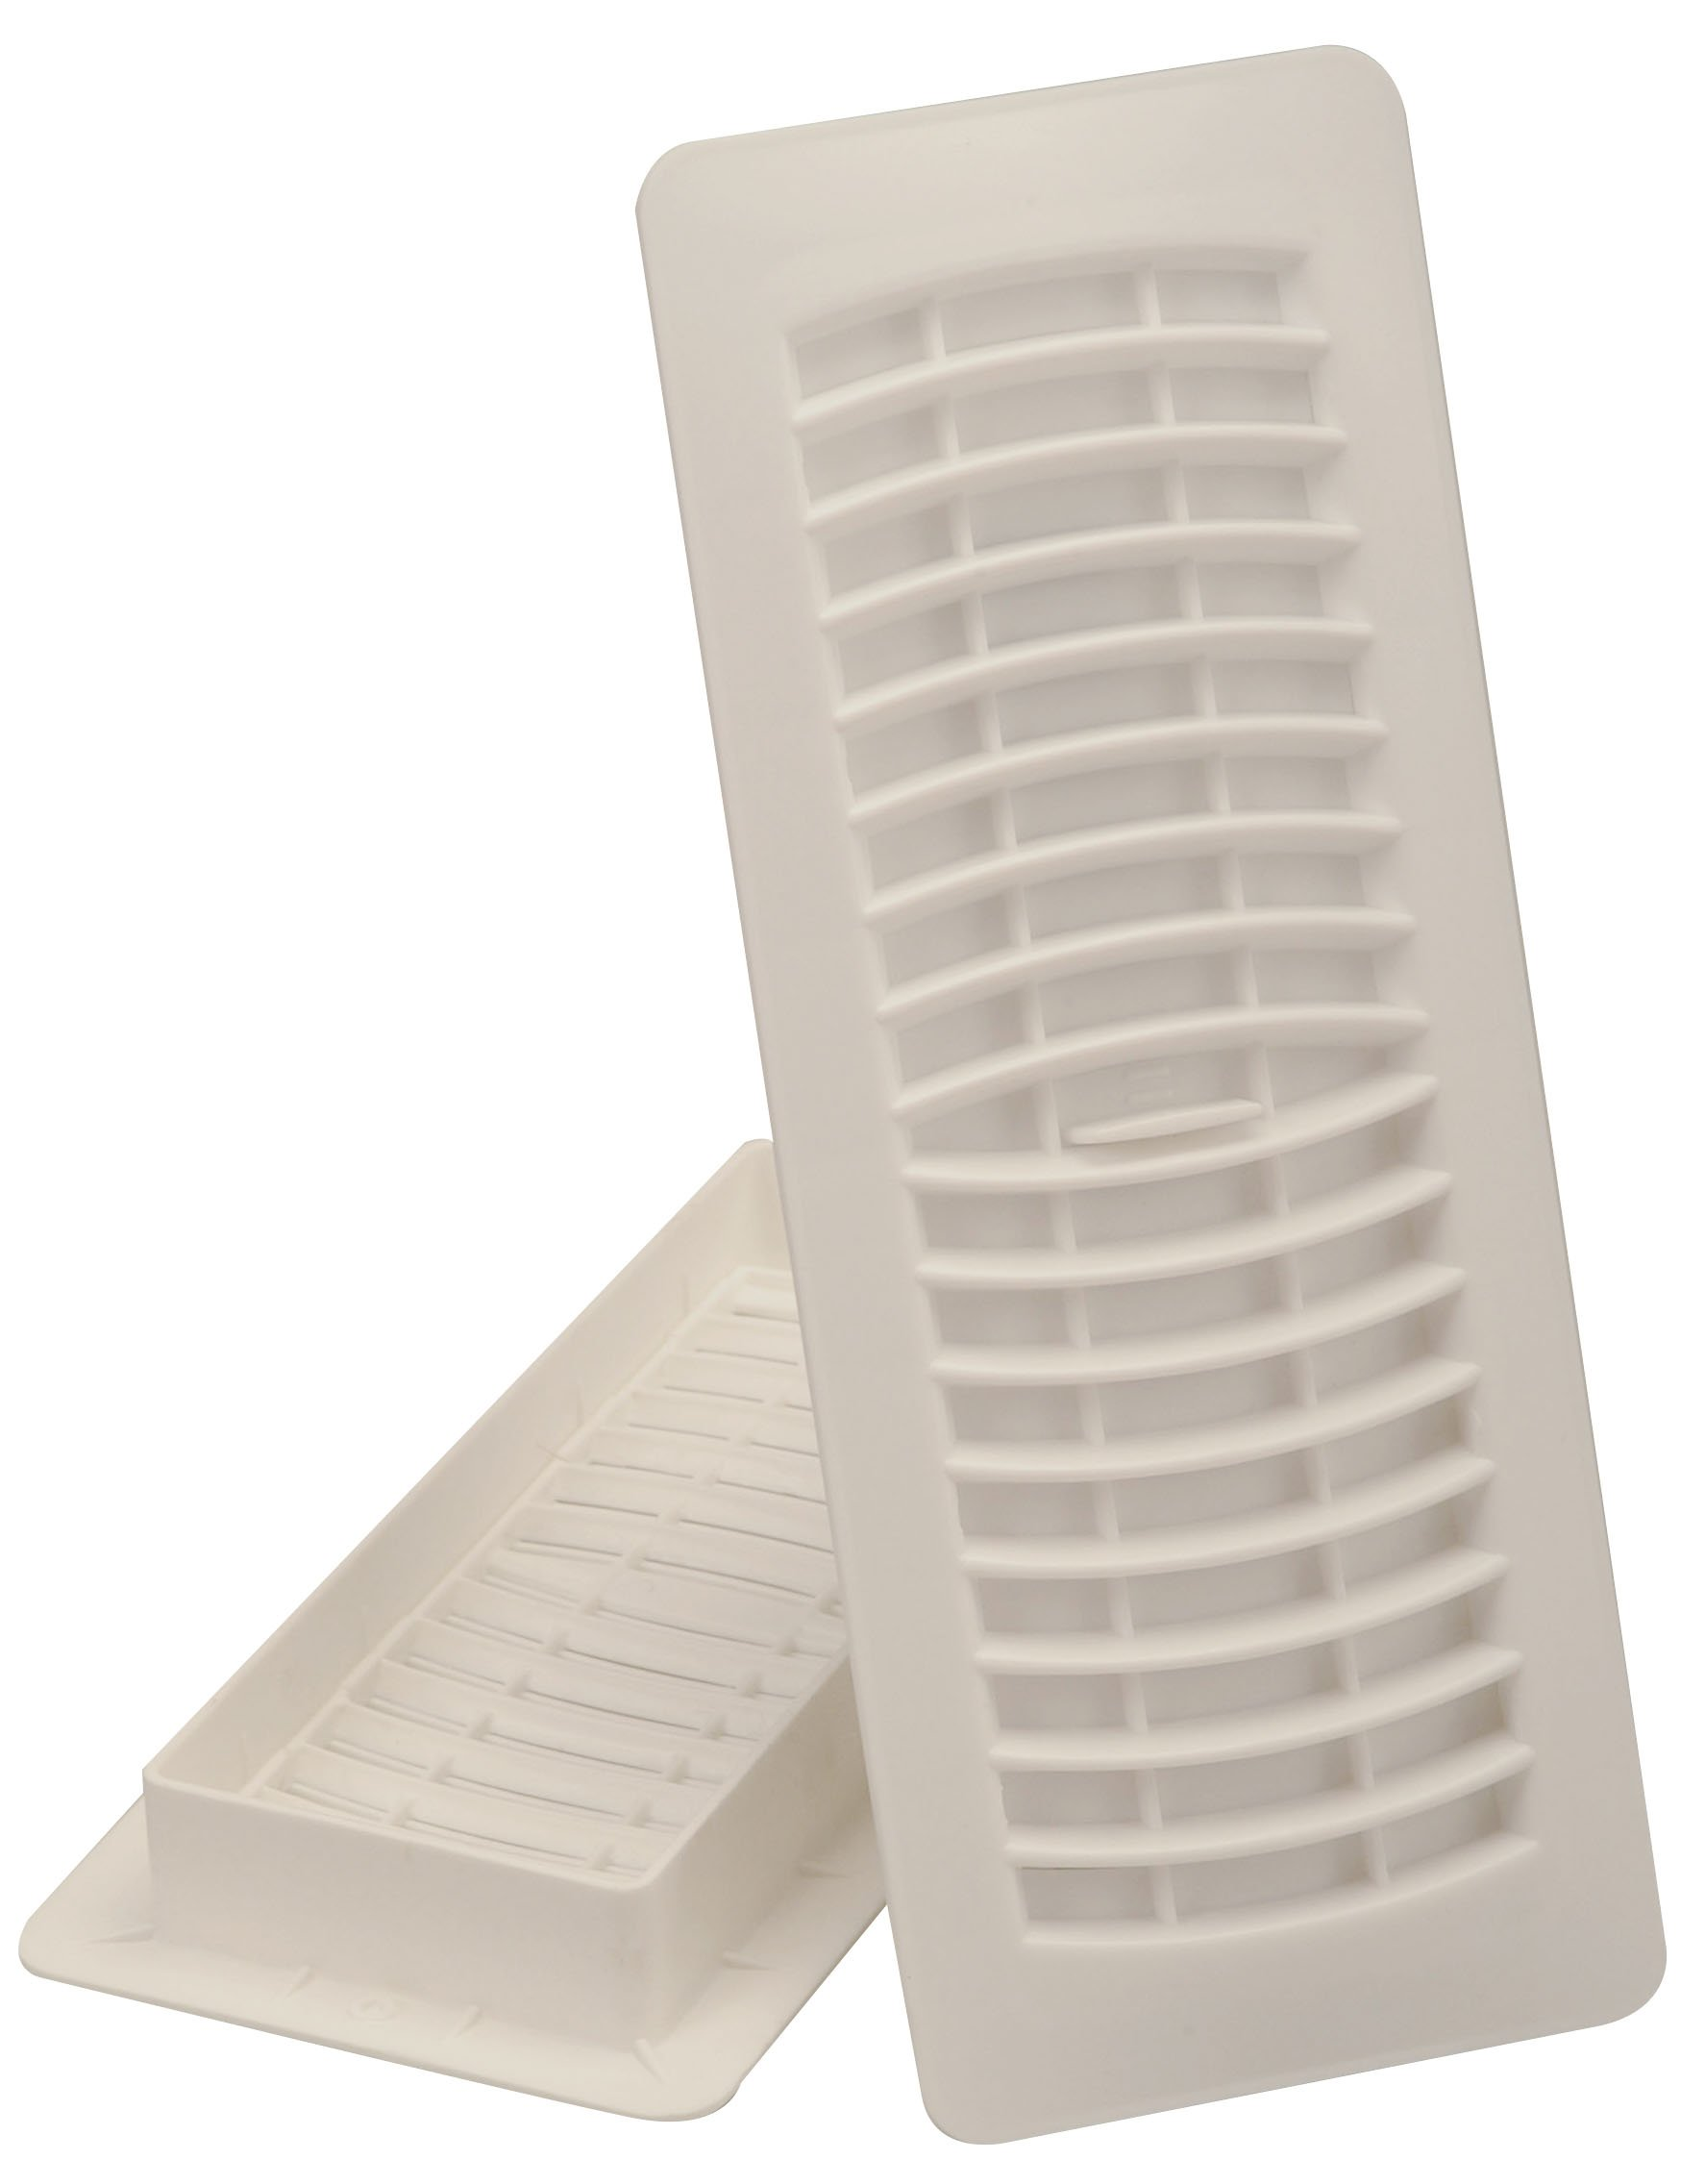 Imperial 4'' x 12'' Louvered Floor Register, Bone White, RG1463 by Imperial